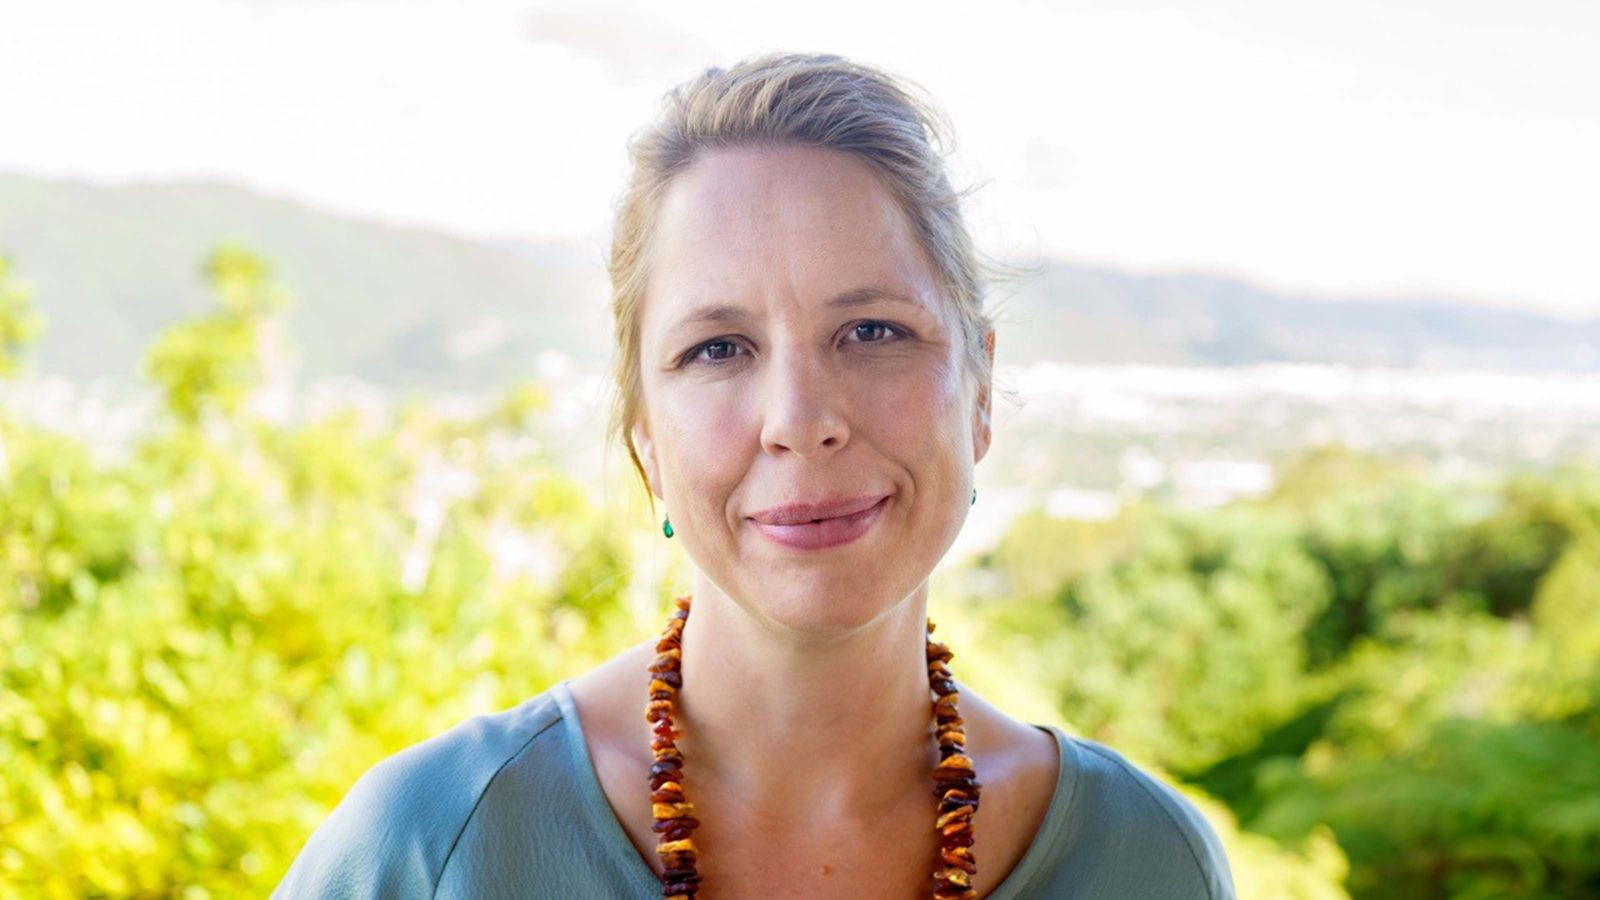 Cynthia Hunefeld, the founder of HerbScience